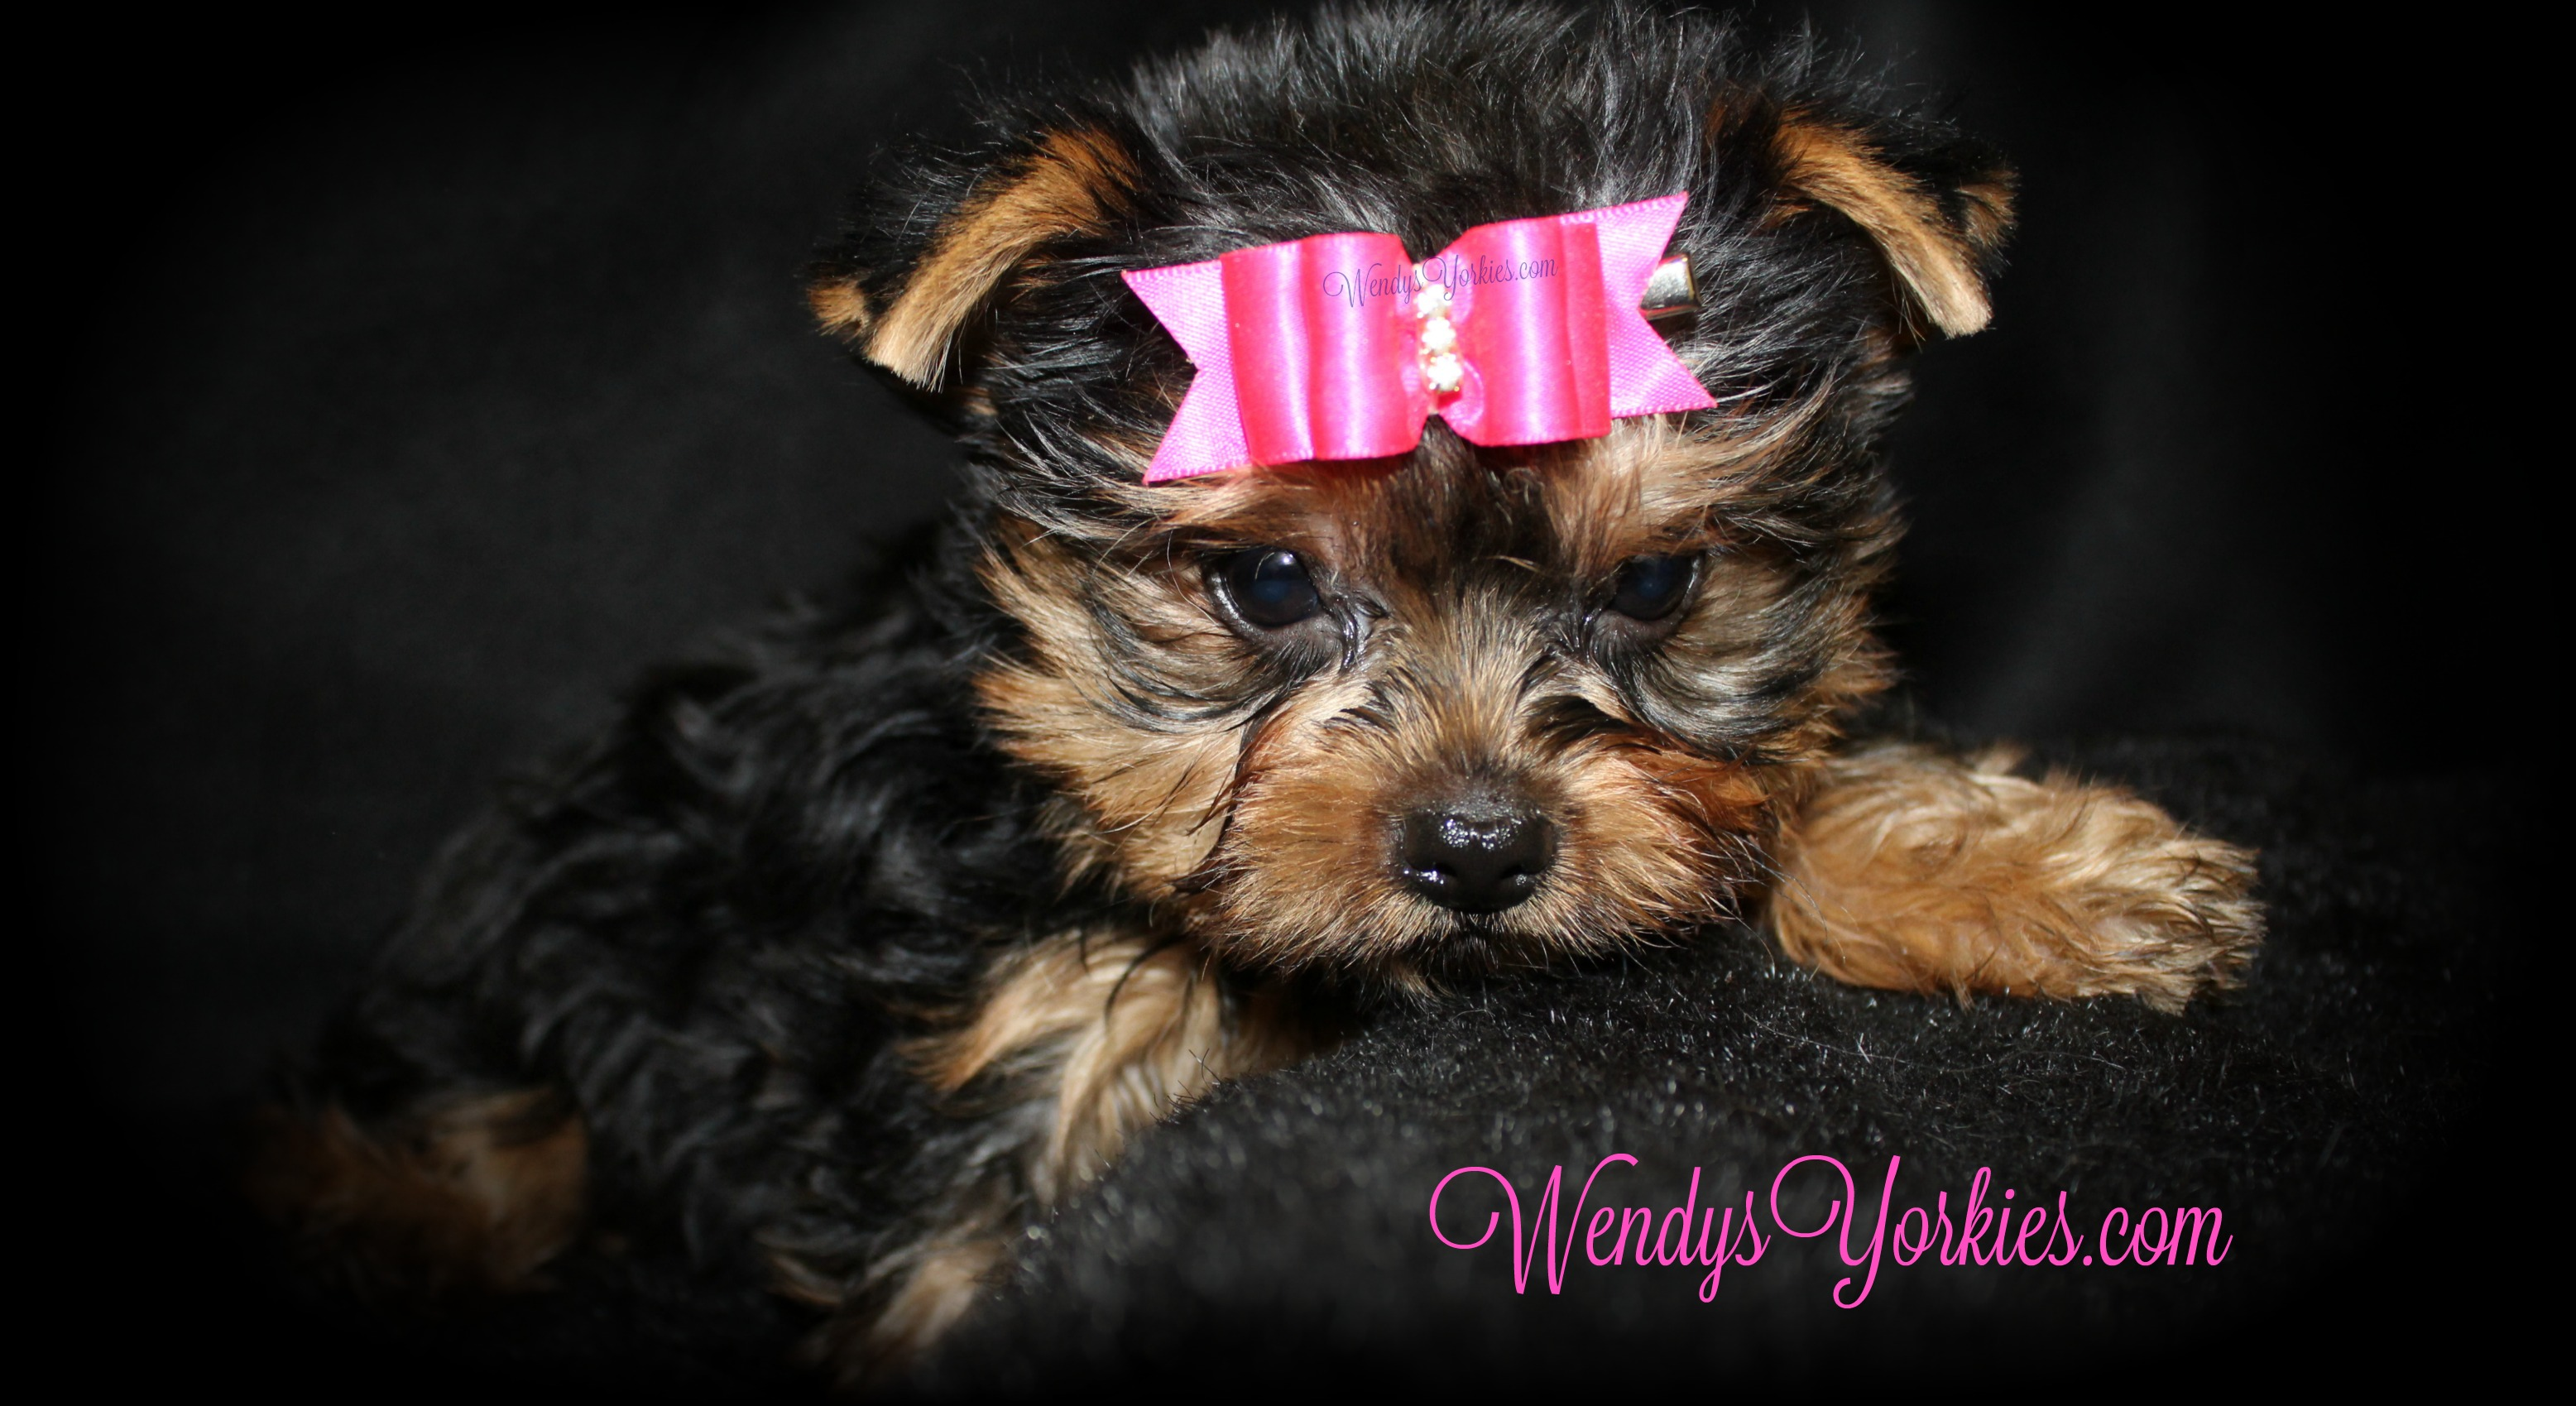 Toy Yorkie puppies for sale, WendysYorkies.com, Grace f2